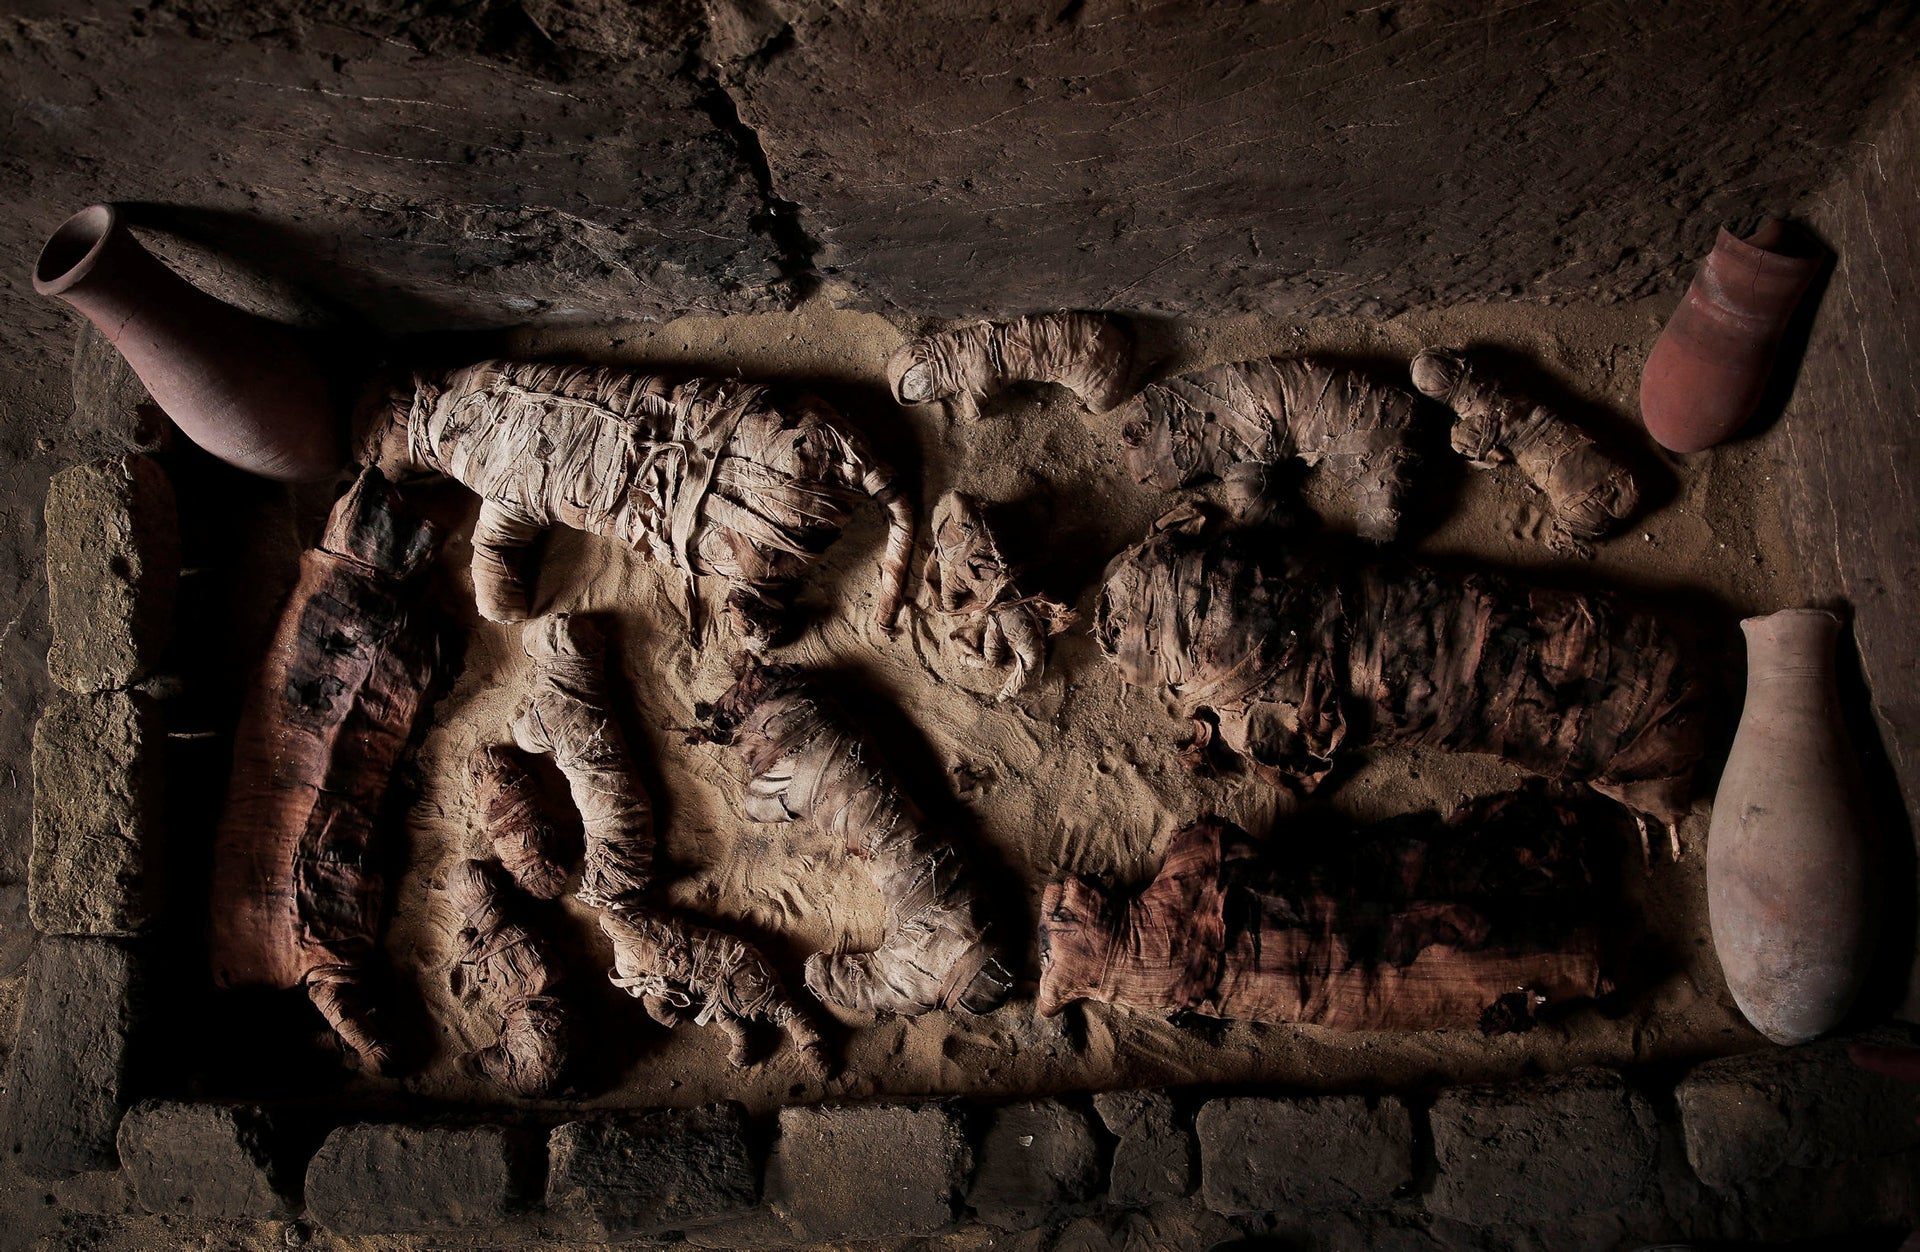 Mummified cats inside a tomb, at an ancient necropolis near Egypt's famed pyramids in Saqqara, Giza, Egypt, Saturday, Nov. 10, 2018. A top Egyptian antiquities official says local archaeologists have discovered seven Pharaonic Age tombs near the capital Cairo containing dozens of cat mummies along with wooden statues depicting other animals.